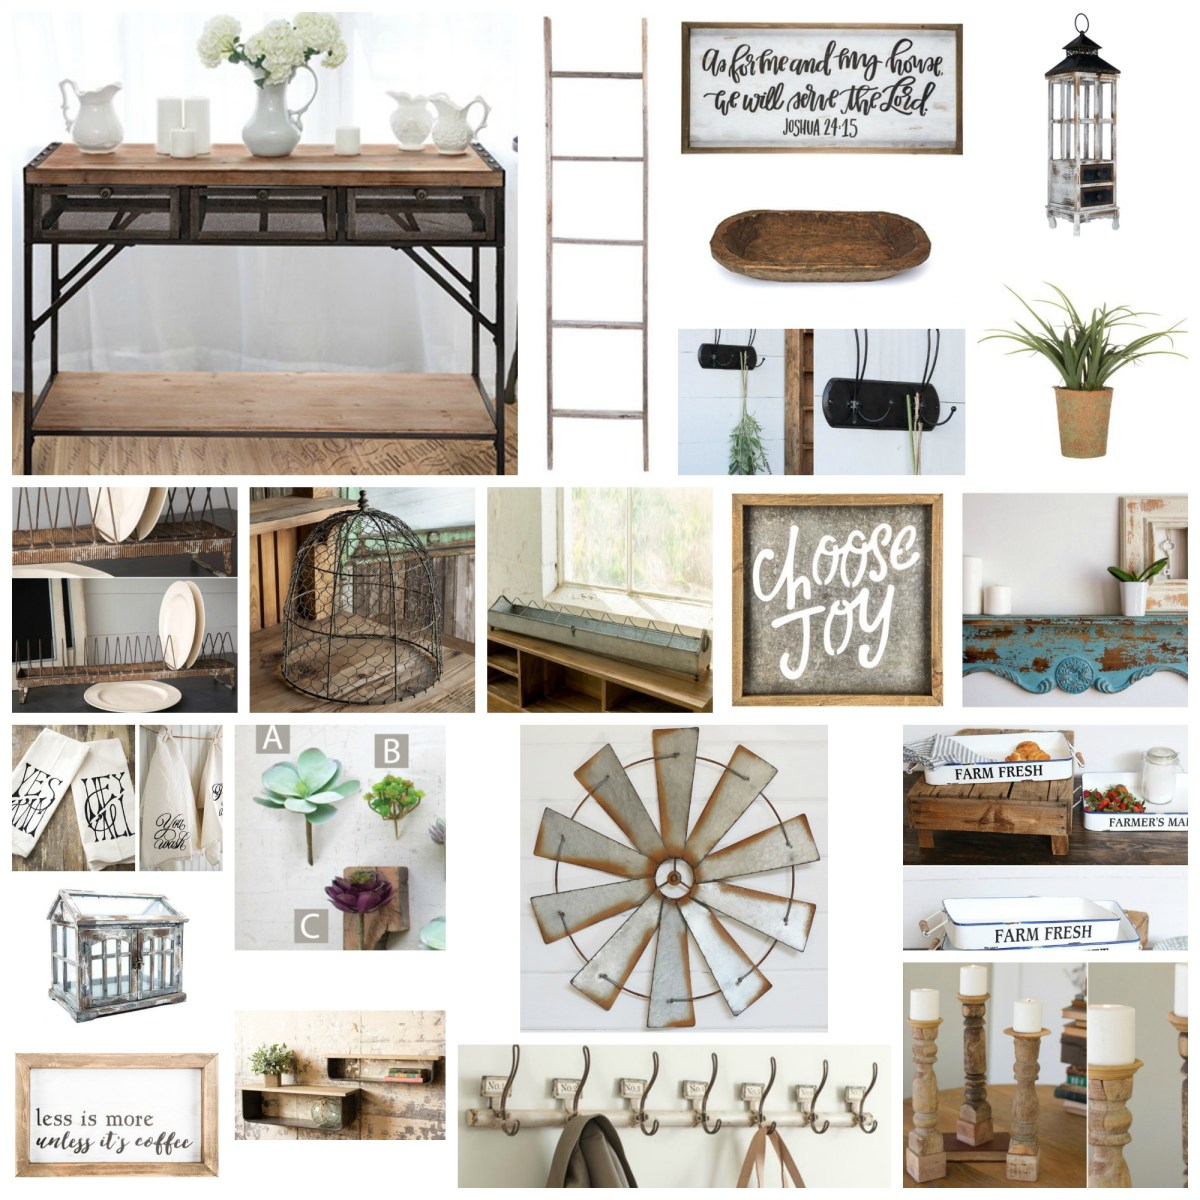 Daily deals wednesday april 5 2017 for Home decor offers